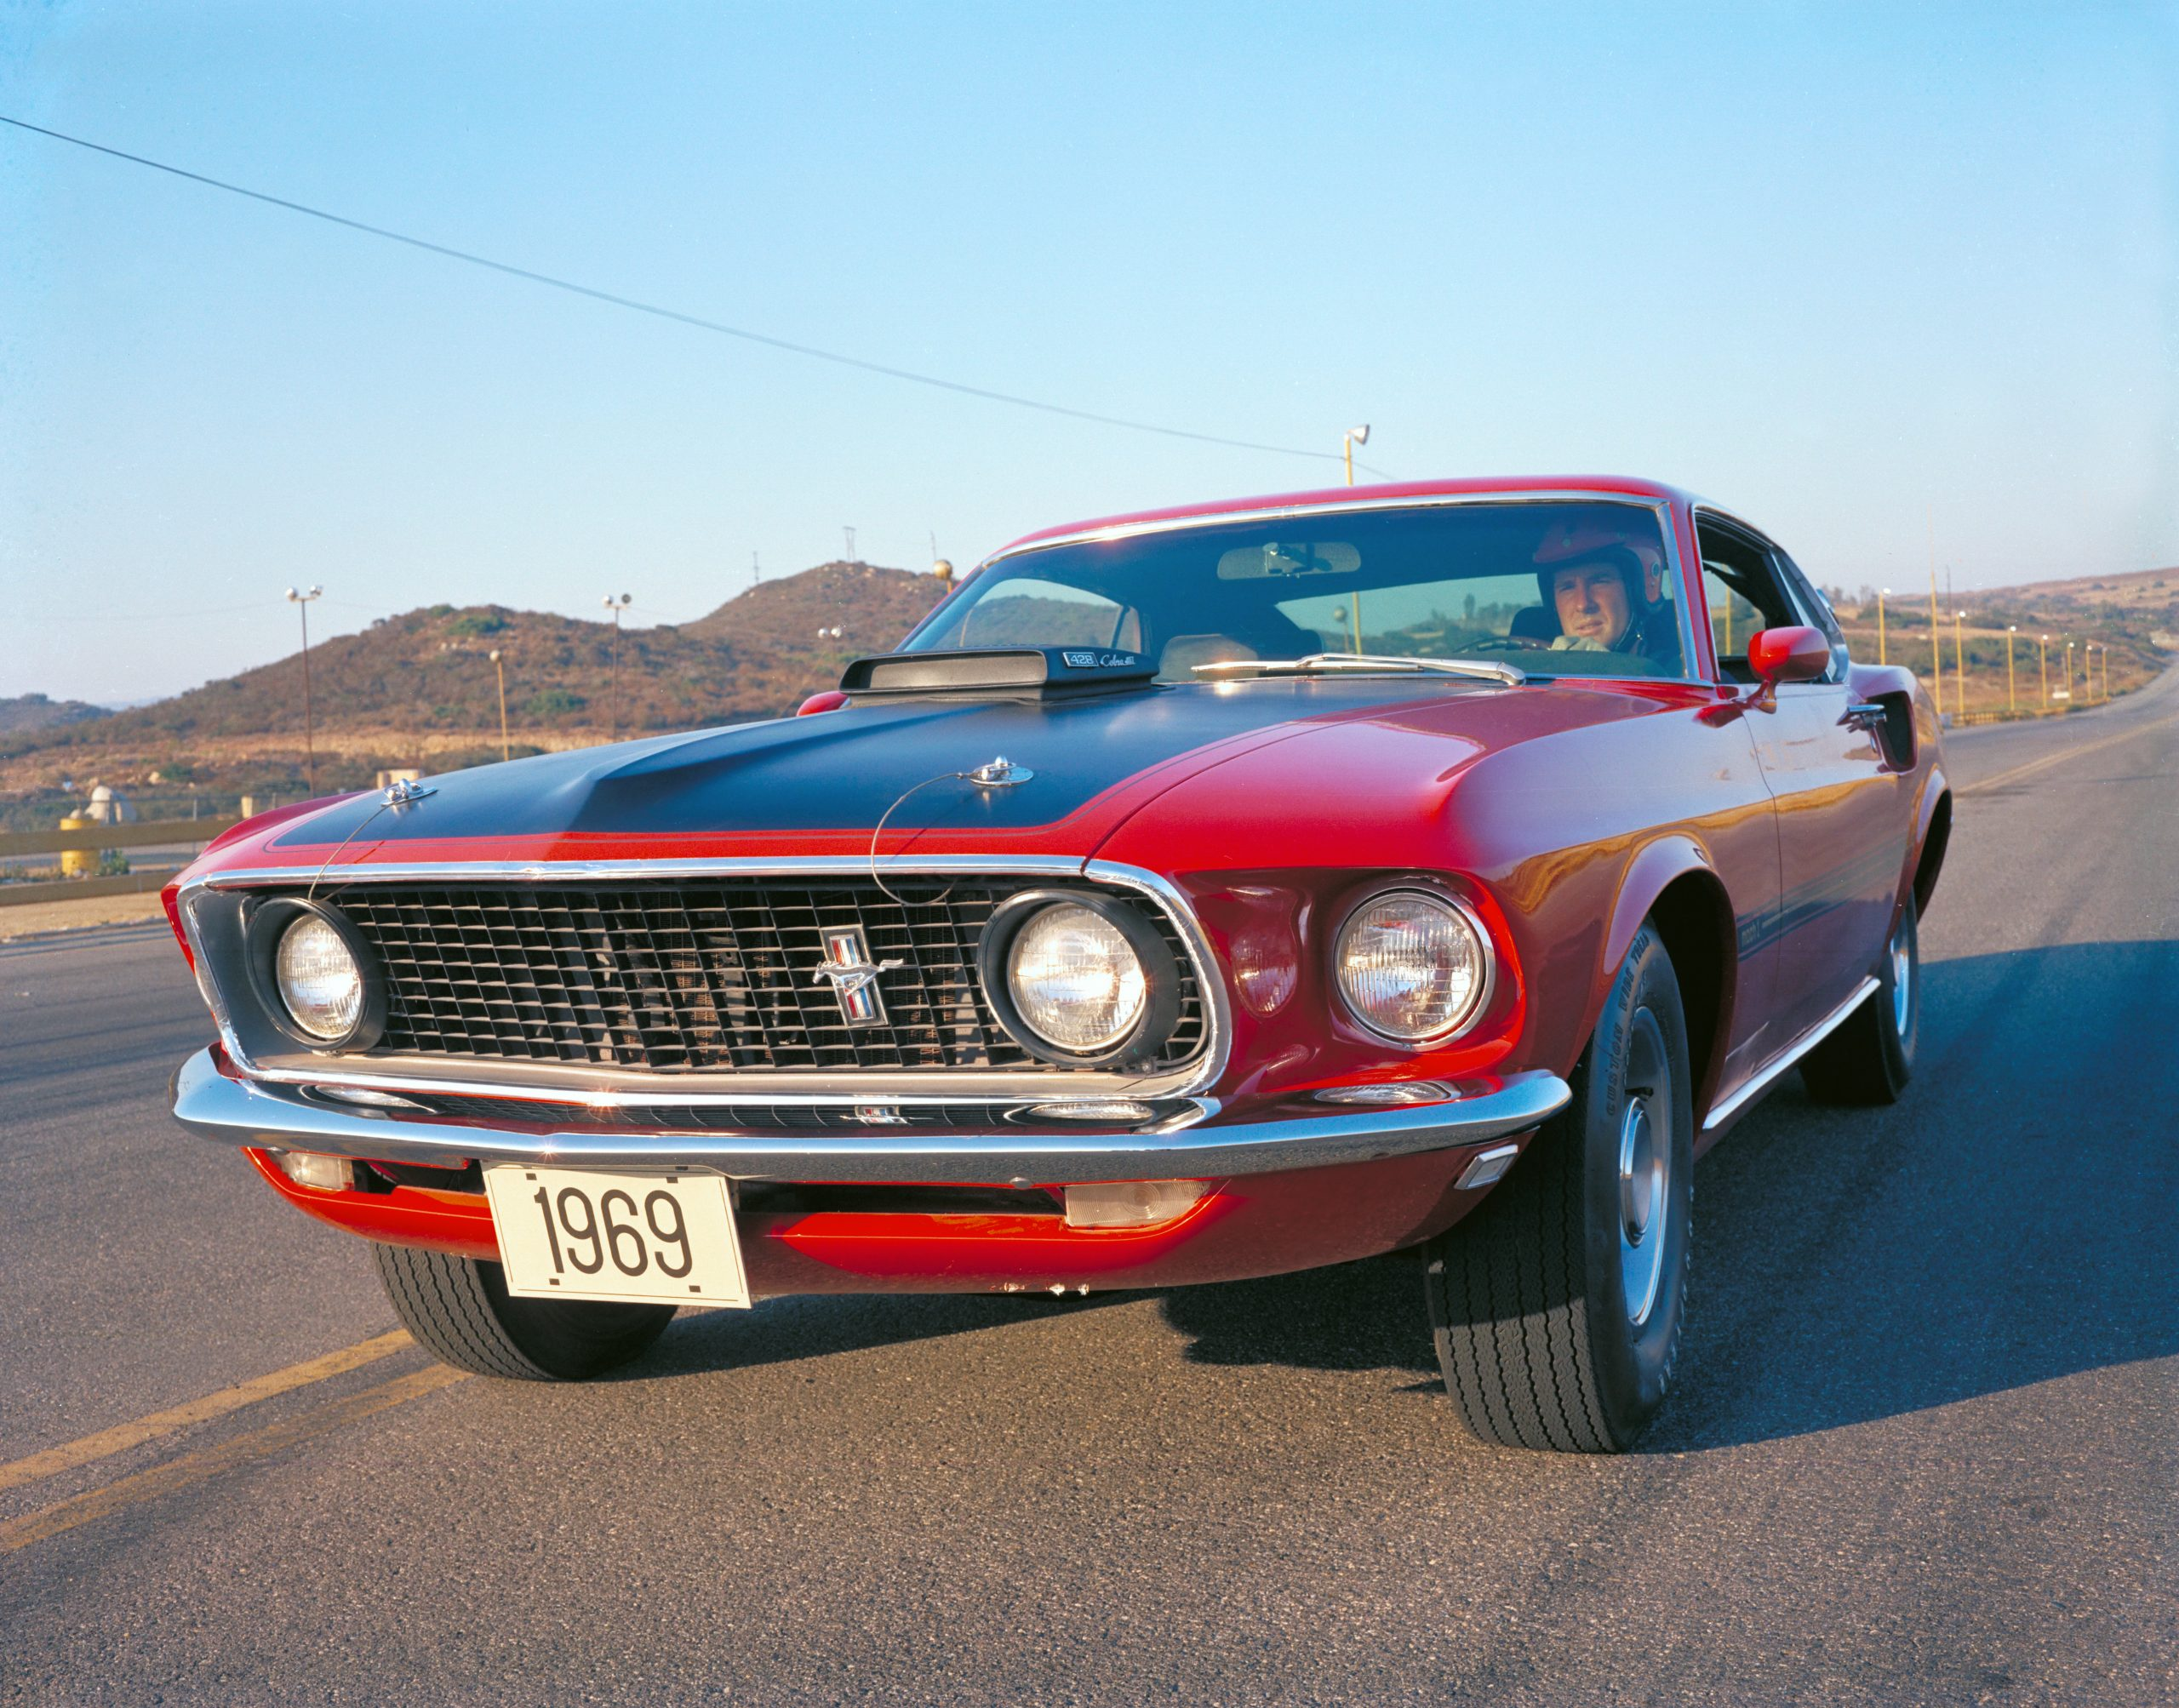 1969 Red Ford Mustang Mach 1 Fastback Front Three-Quarter On Track Action